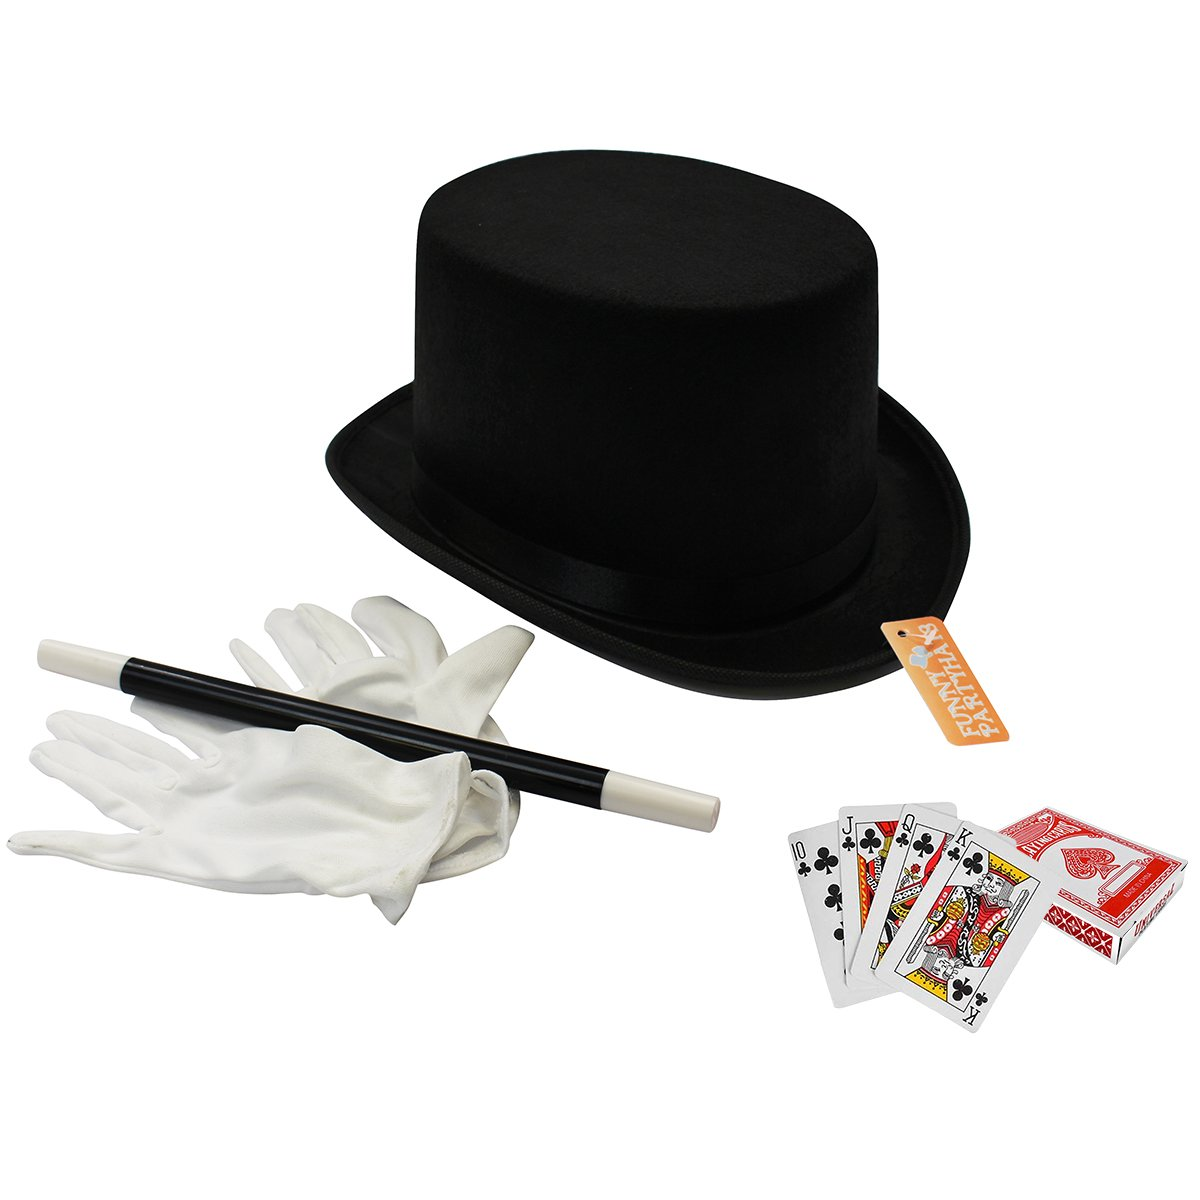 Funny Party Hats Magician Costume - 4 Pc Set, Magician Hat, Wand , Gloves & Bonus Cards - Magician Kit for Kids by Funny Party Hats